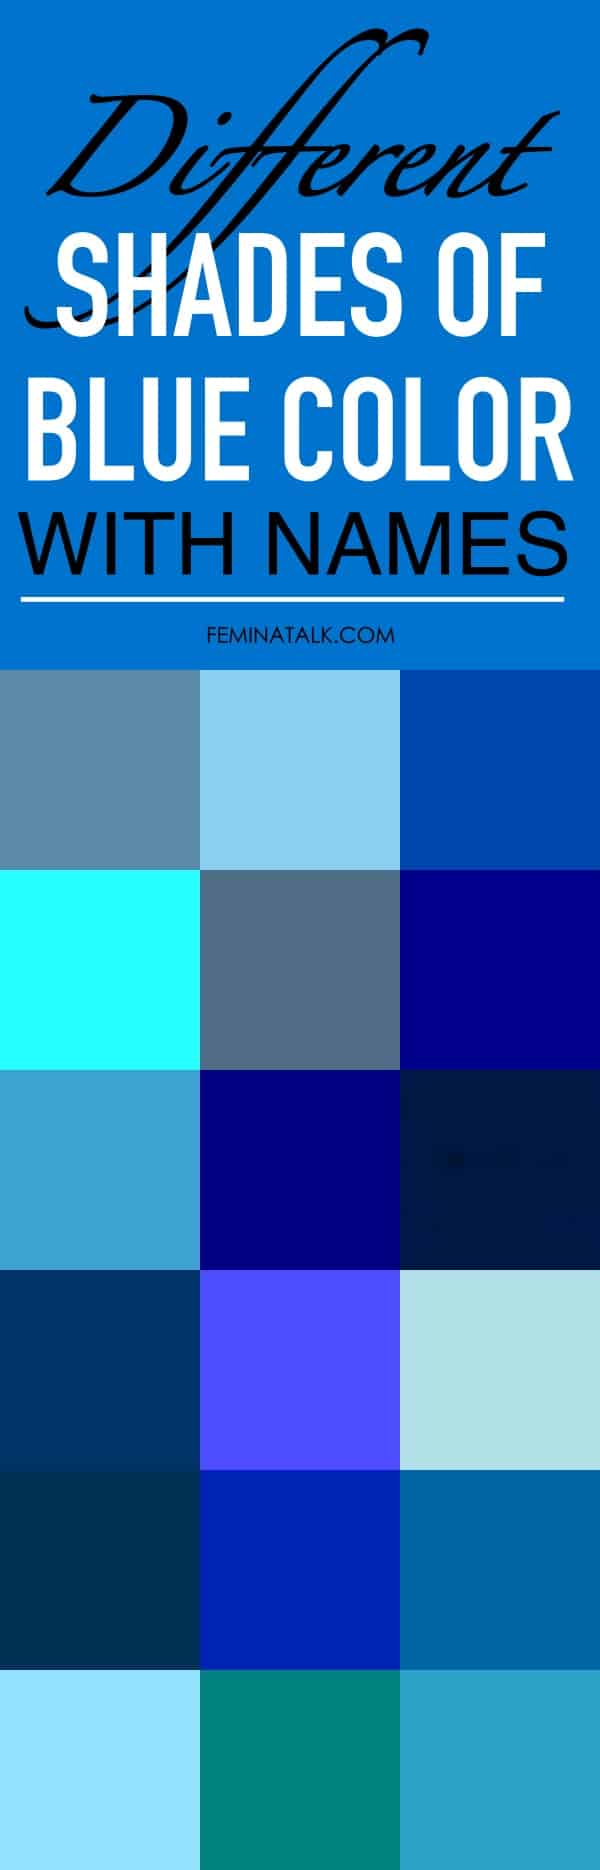 Different Shades of Blue Color with Names